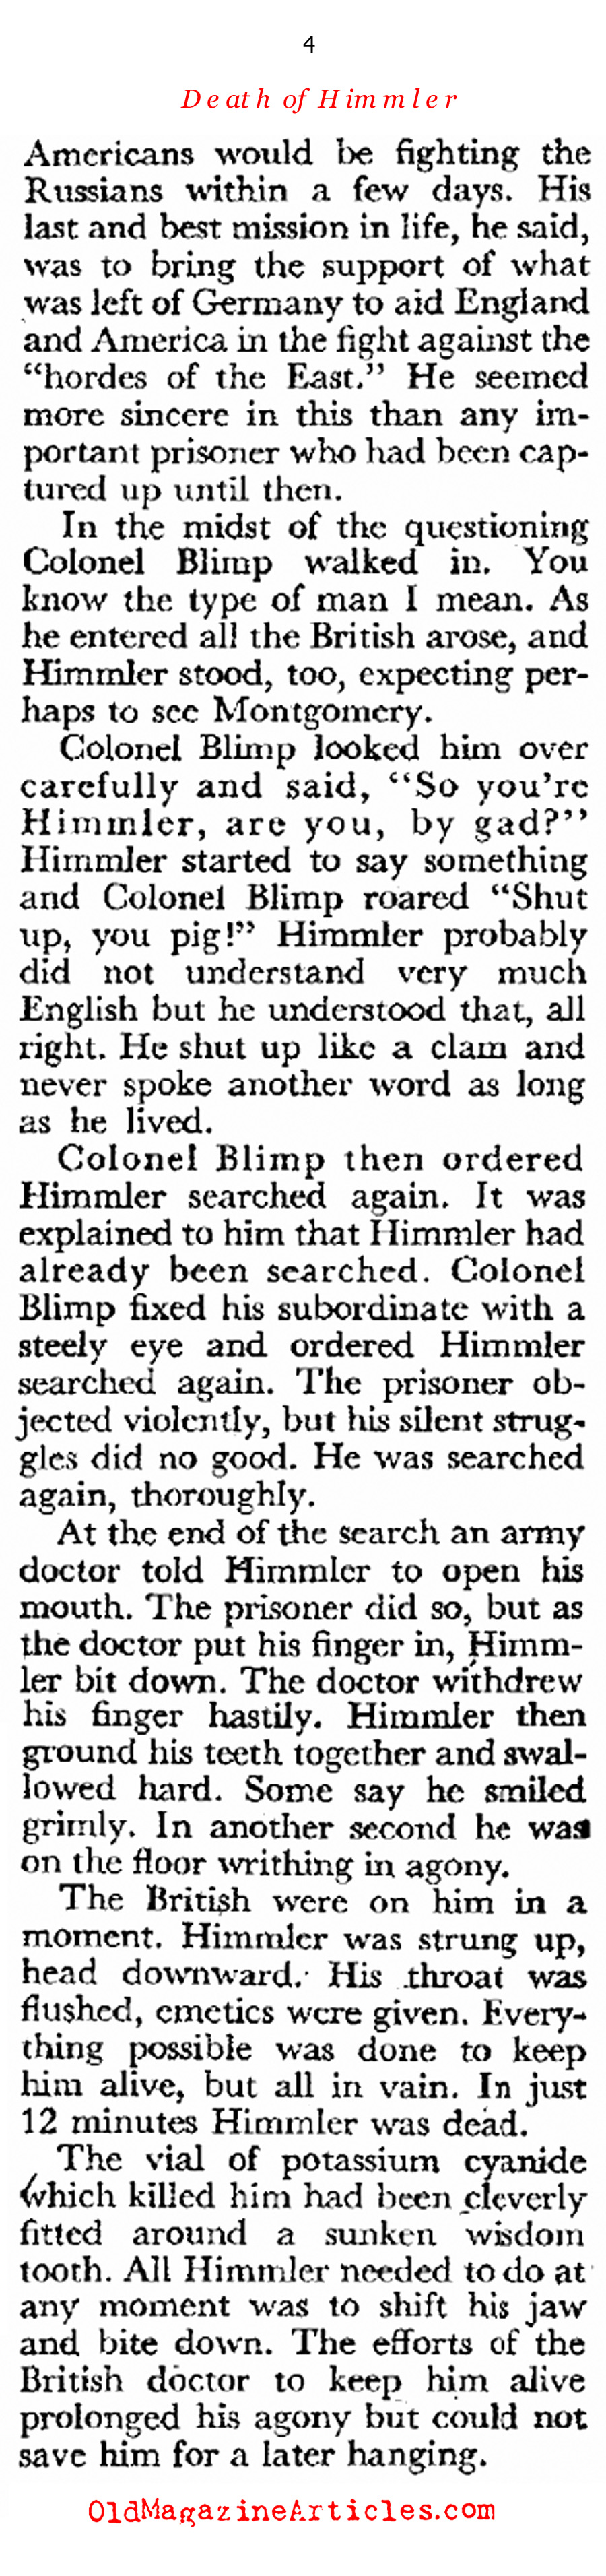 ''The Strange Death of Heinrich Himmler'' (Coronet Magazine, 1947)